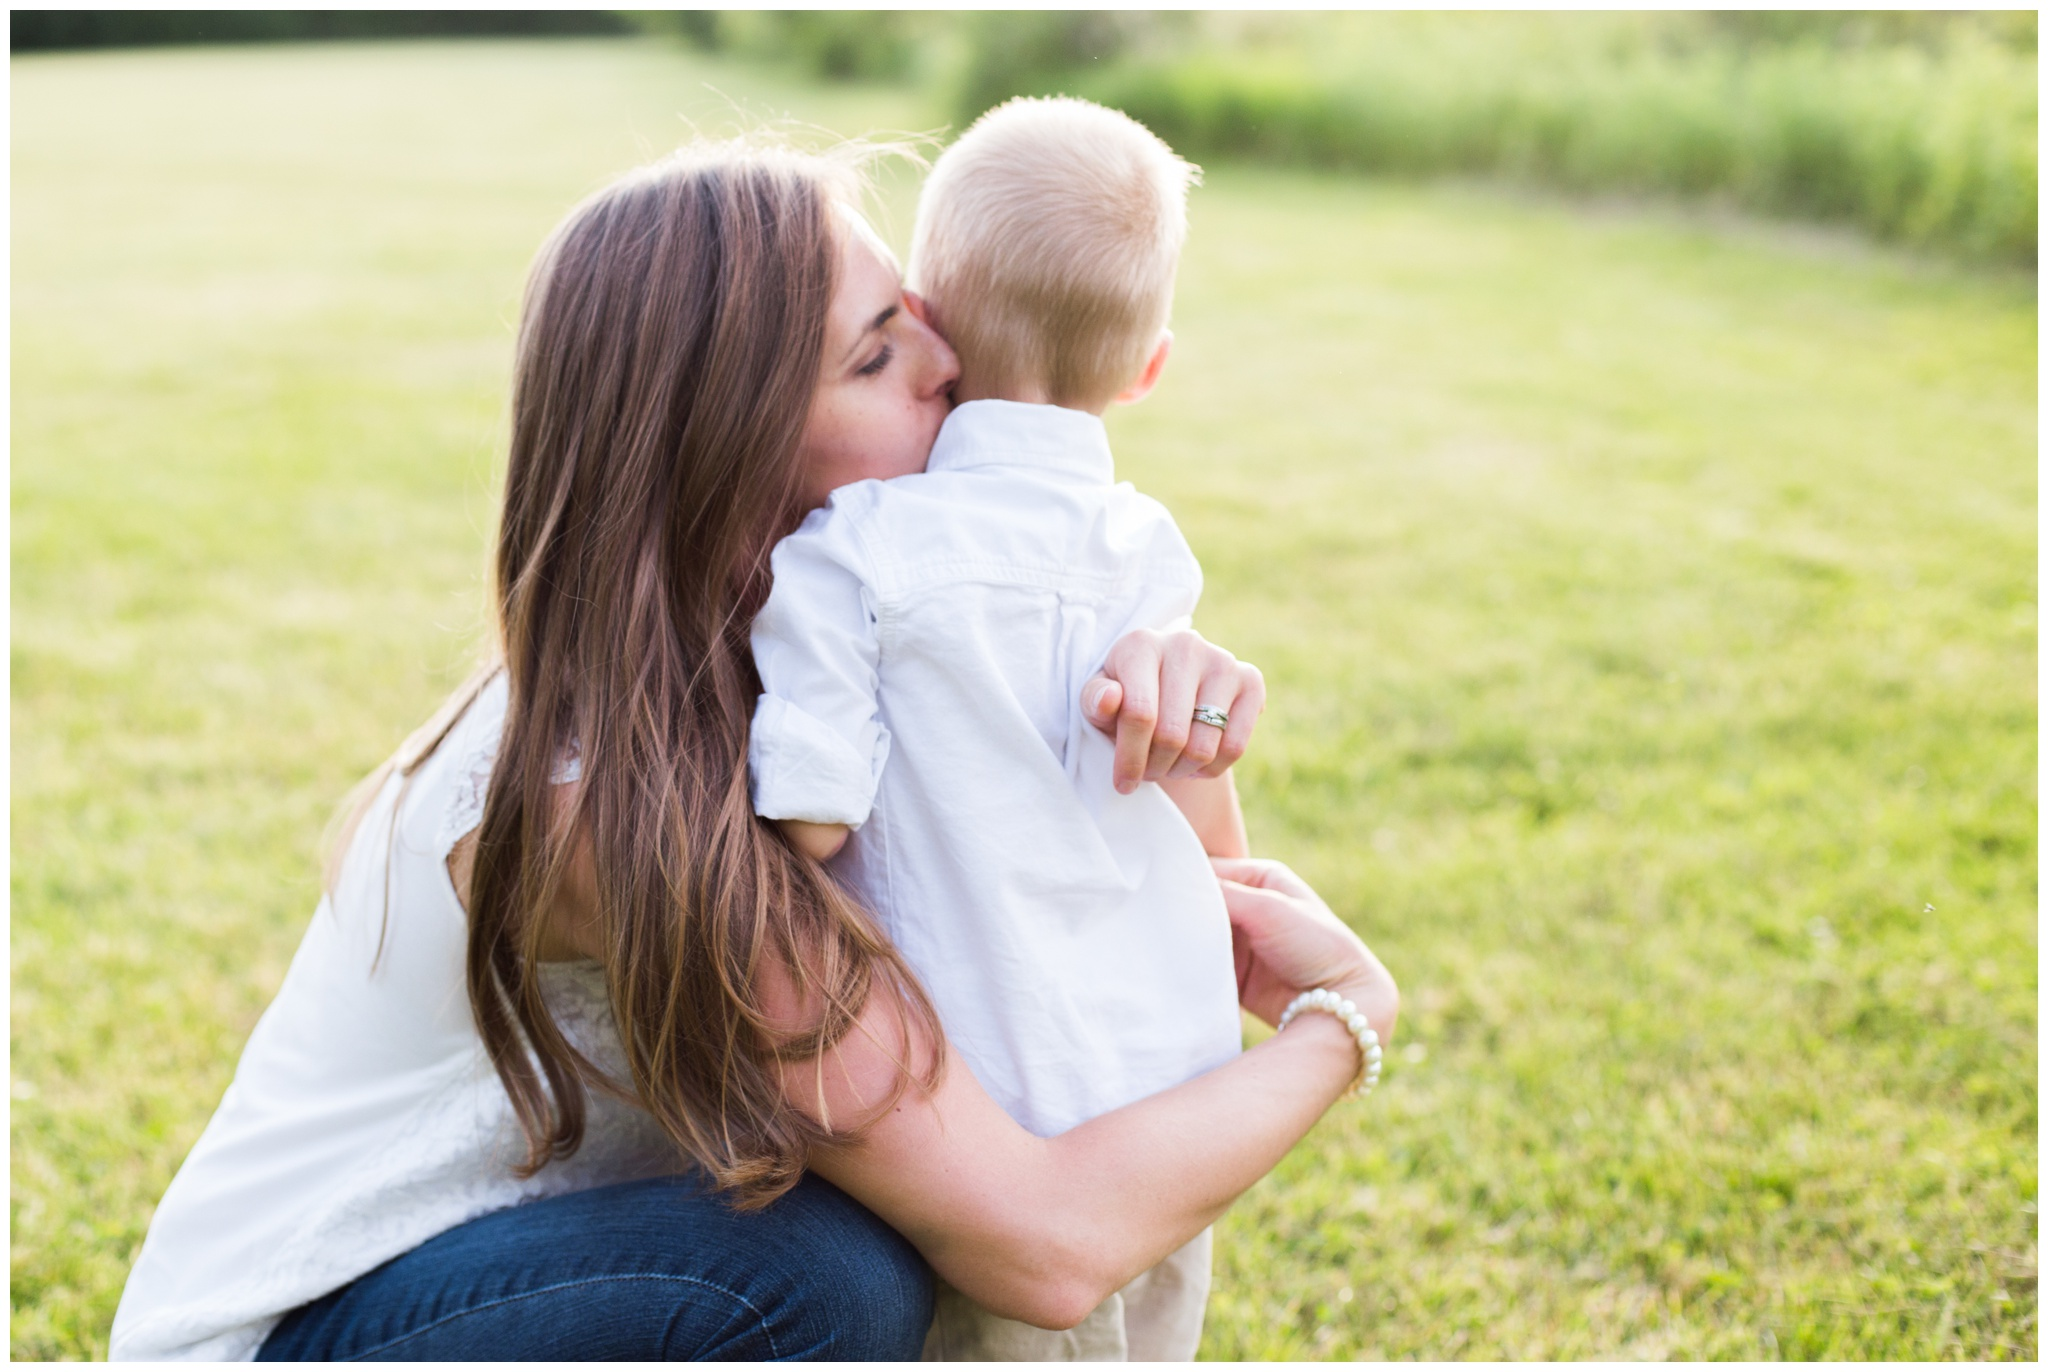 Potters Bridge Park family session in Noblesville, Indiana